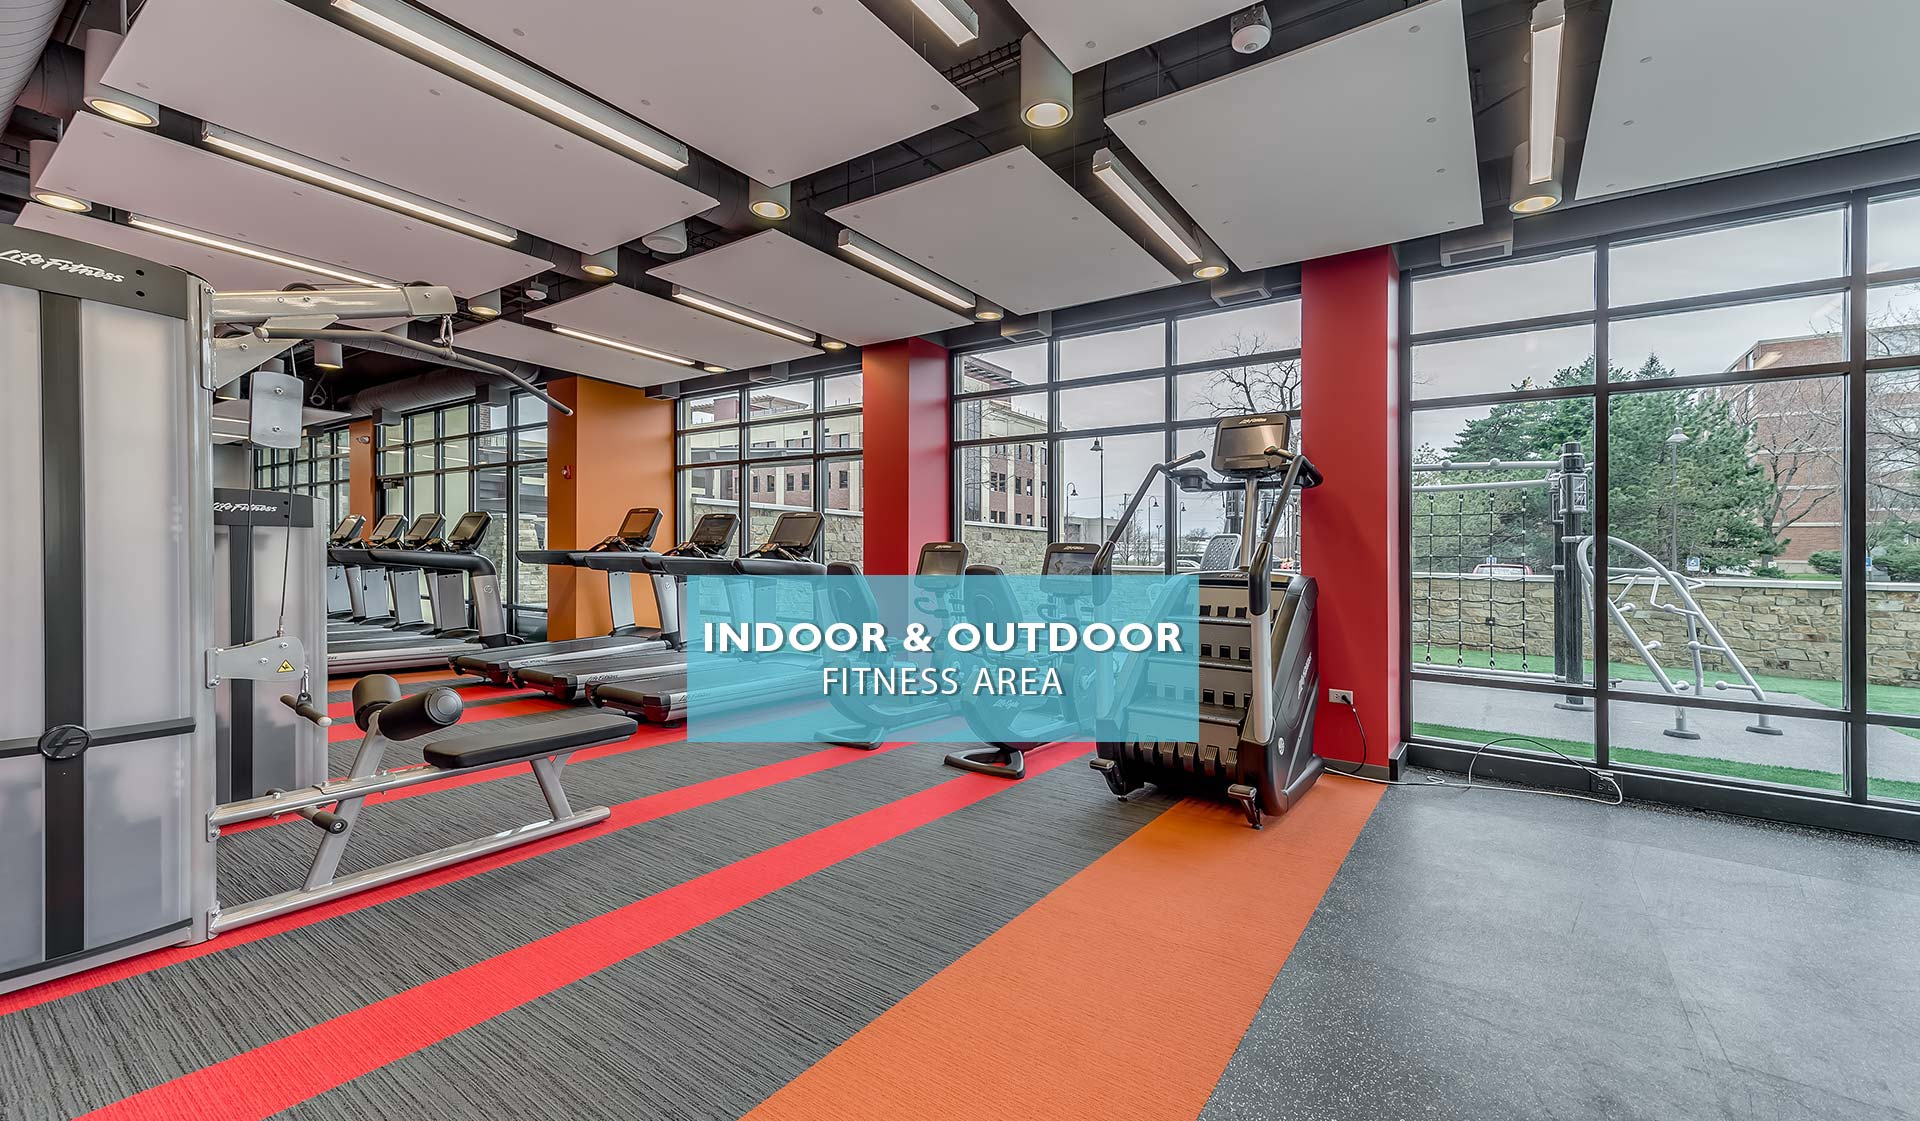 Yorktown Apartment homes - indoor fitness center with weight machines and treadmills - Lombard, IL